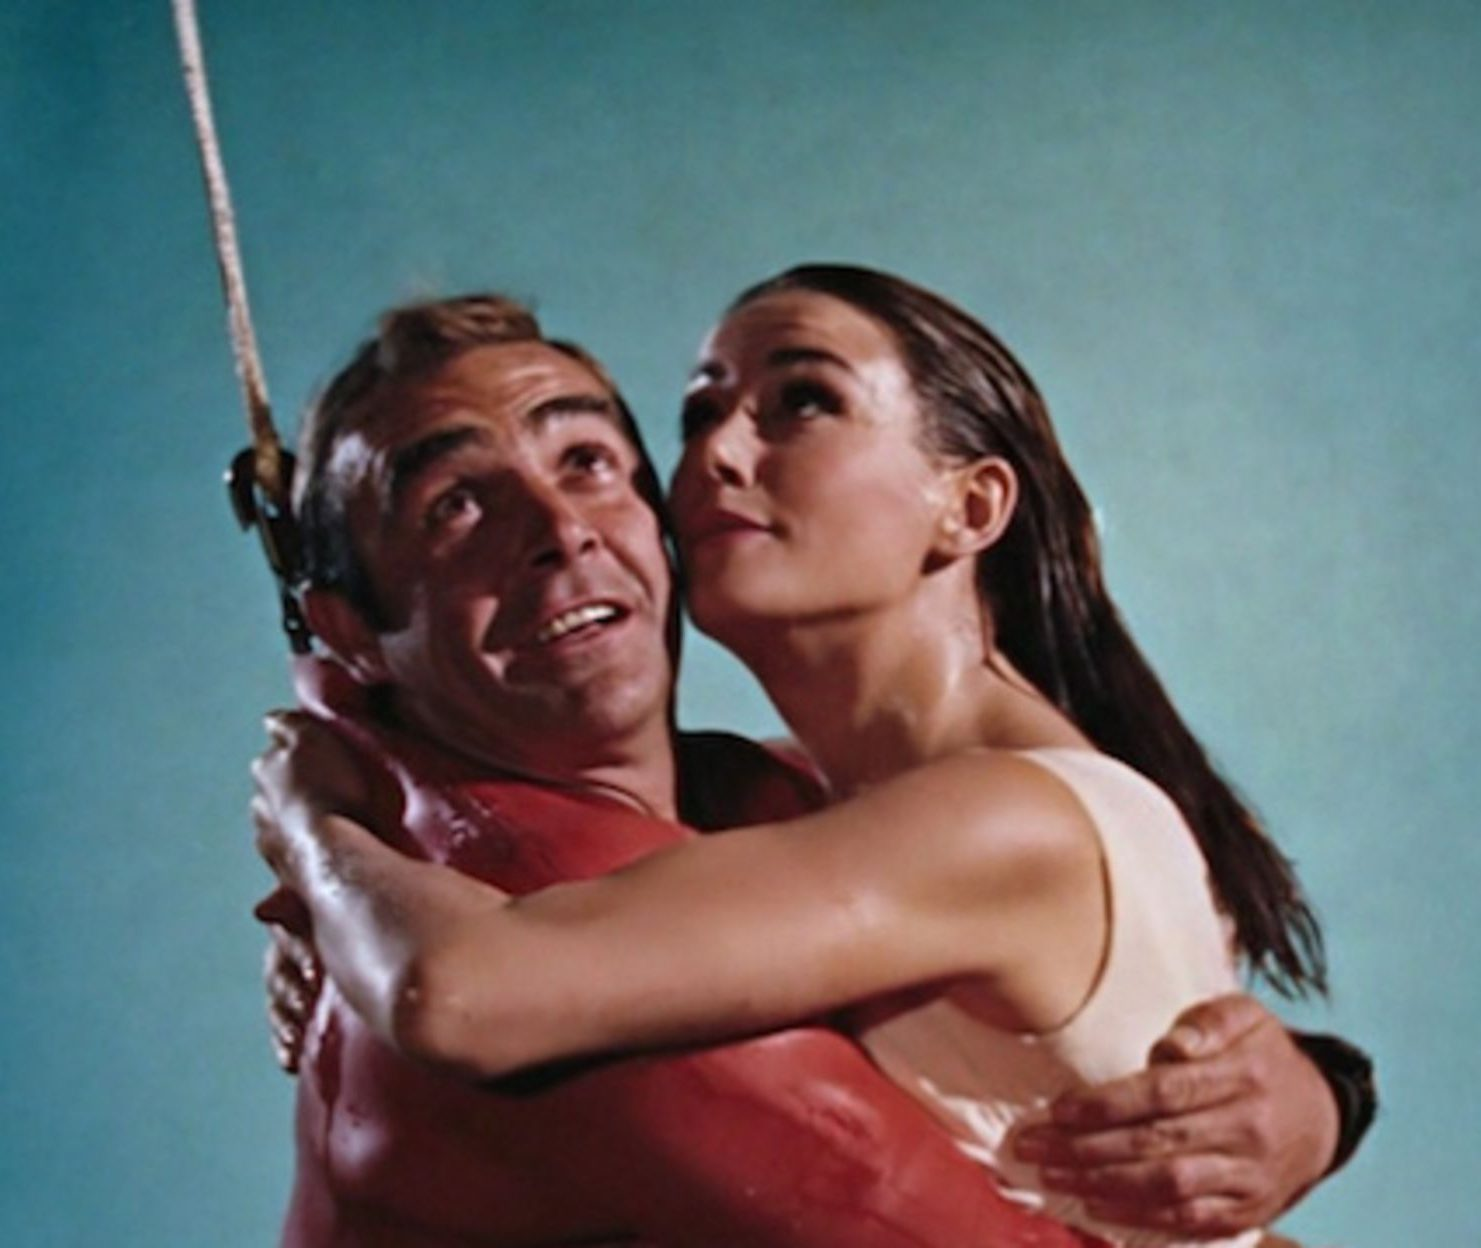 thunderball hed e1603451150808 20 Things You Never Knew About Sean Connery